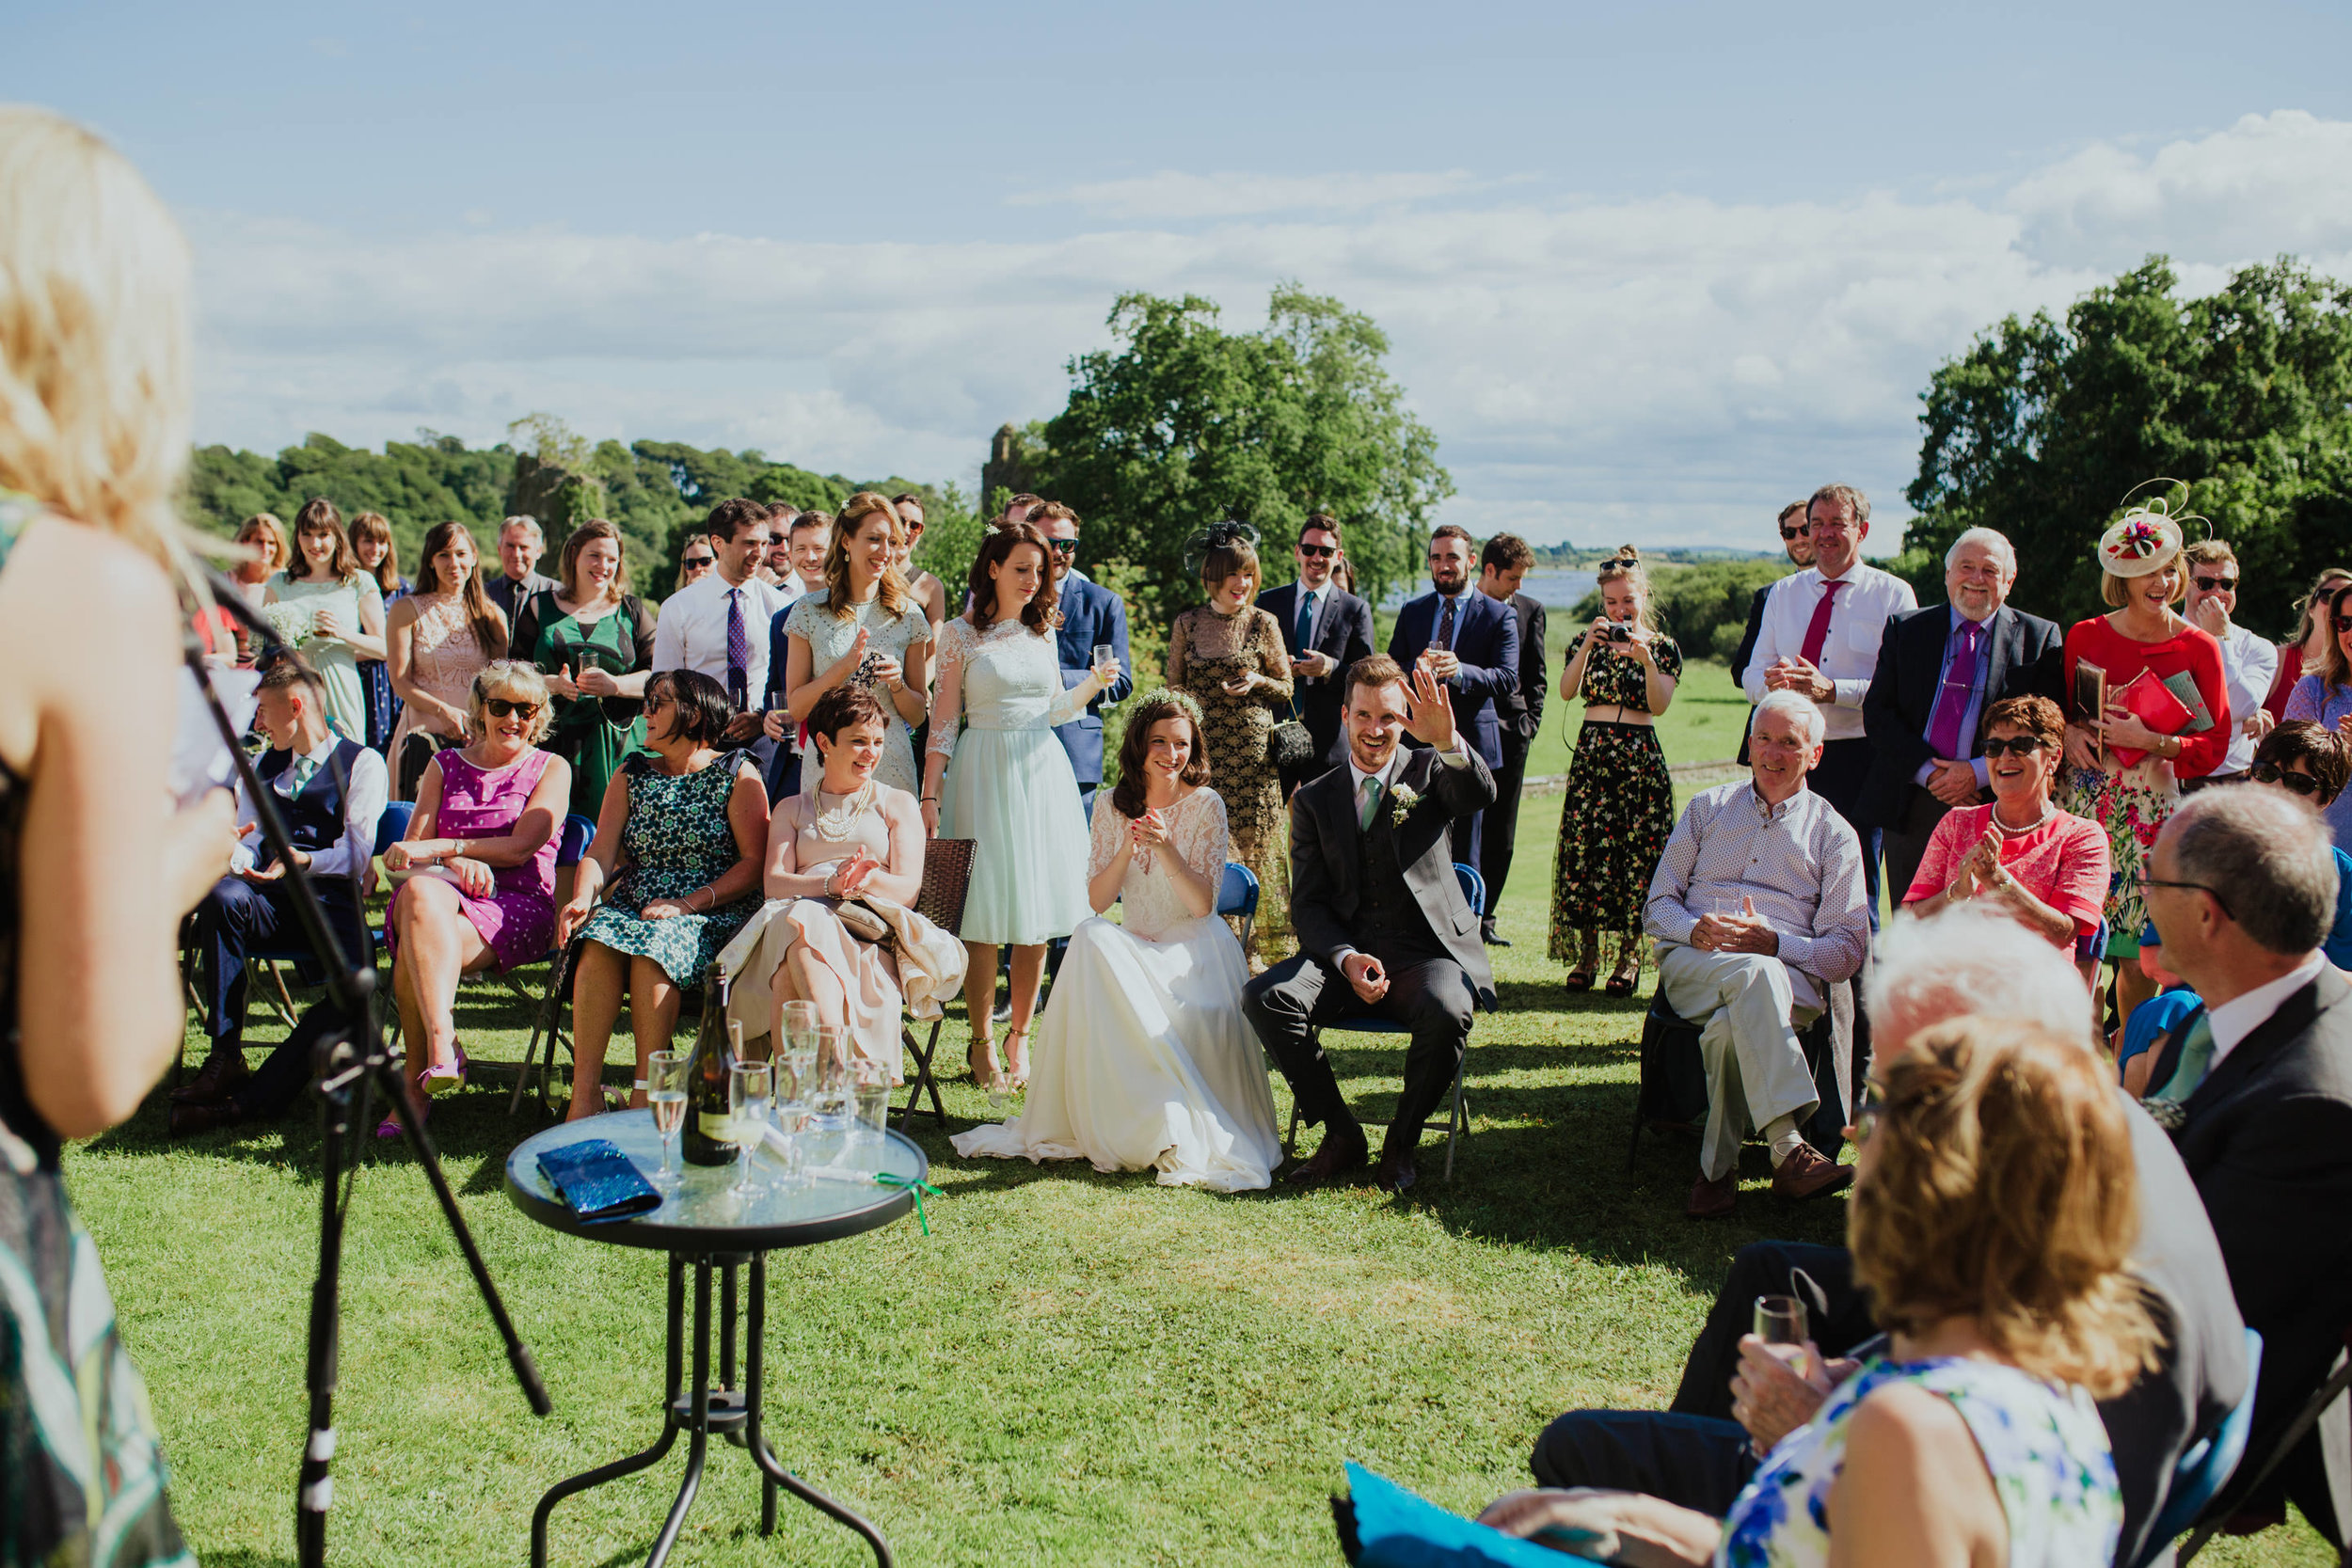 a+s_temple_house_sligo_wedding_livia_figueiredo_961.jpg